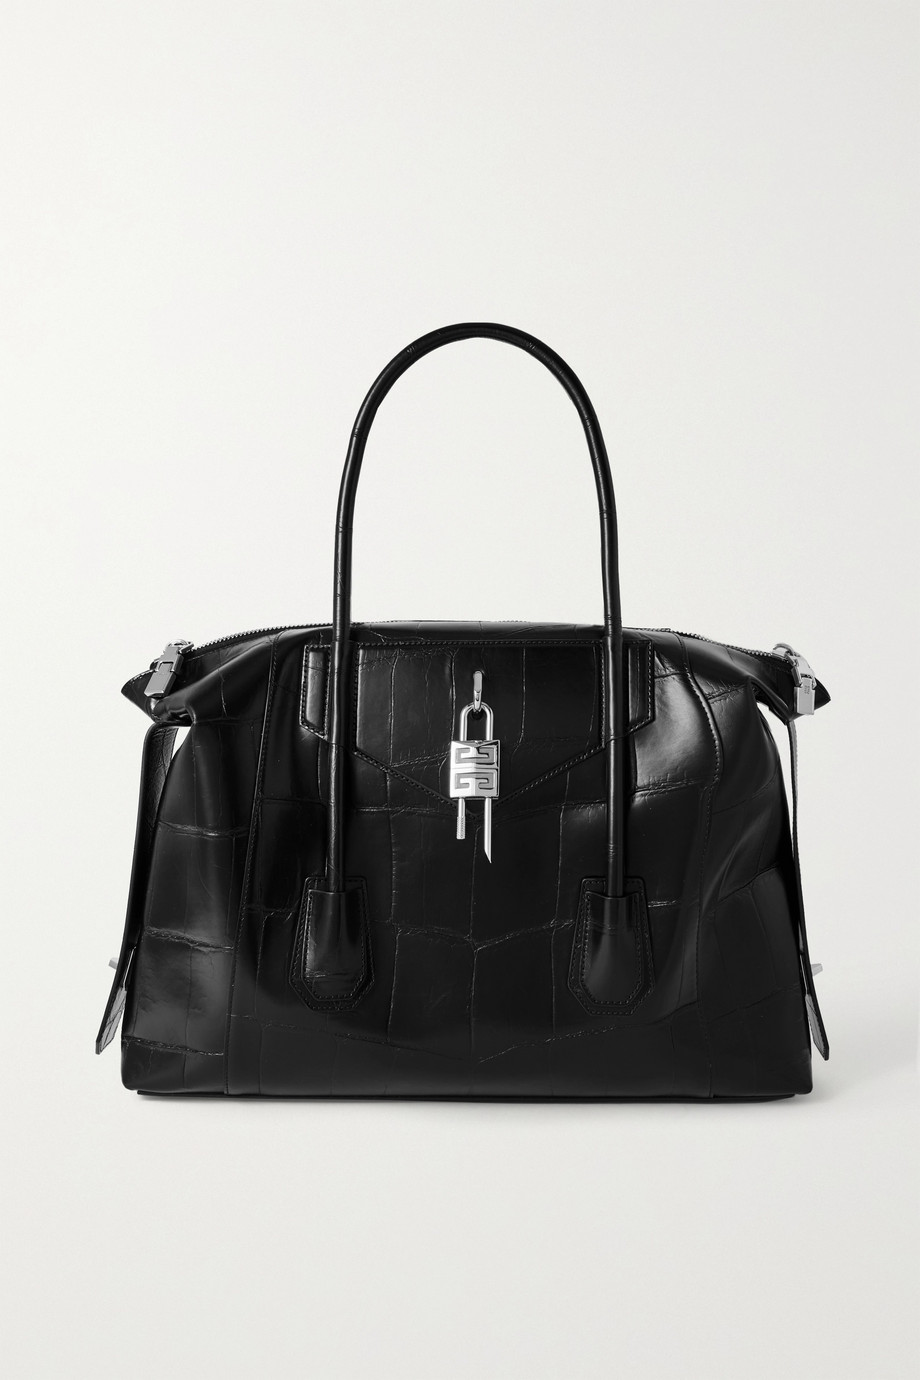 GIVENCHY Antigona Soft Lock medium croc-effect leather tote